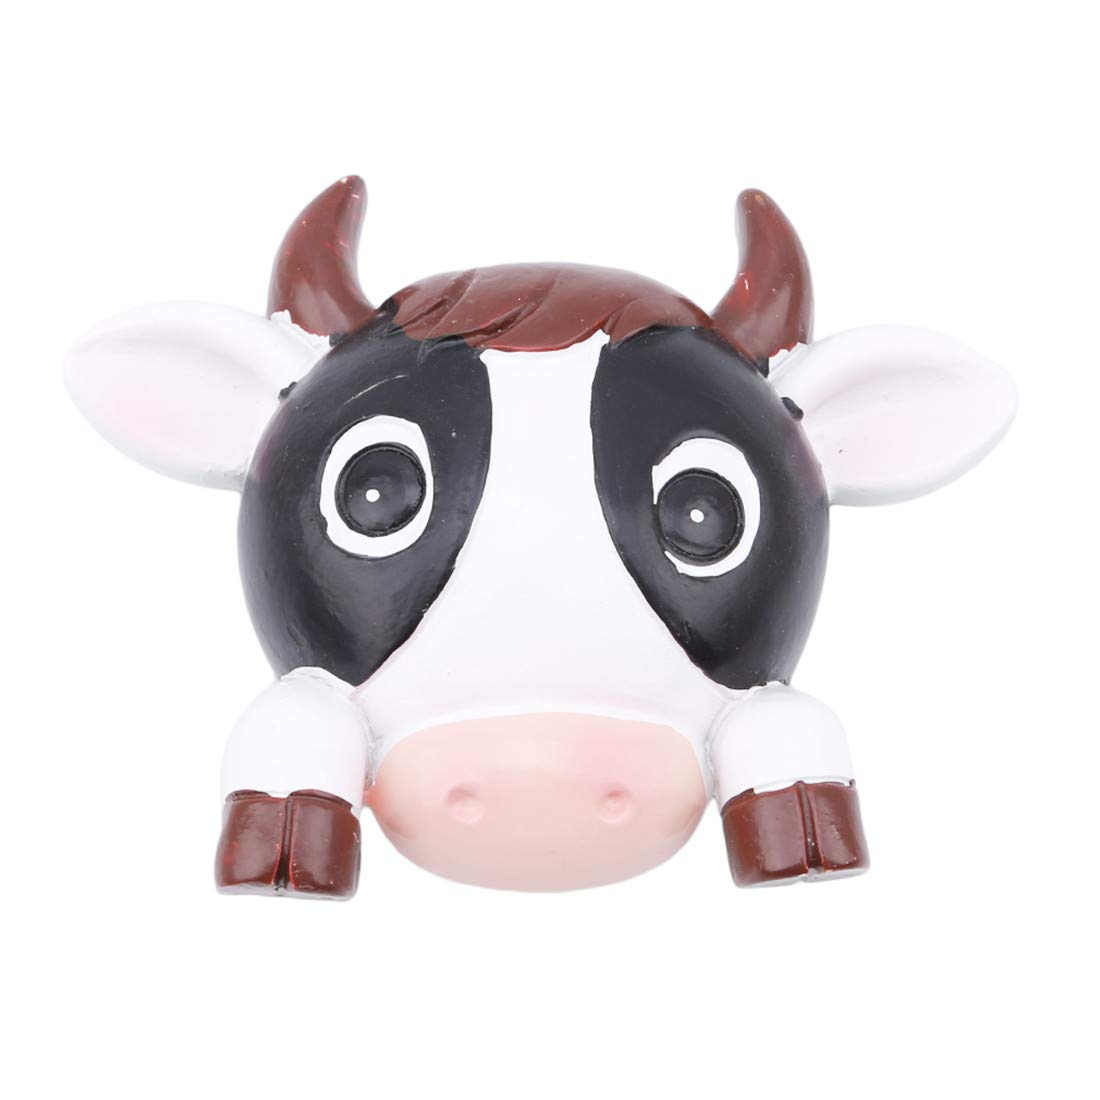 LGJJJ Switch Sticker Dairy Cow Wall Sticker Creative Resin Animal Switch Sticker Switch Decor Decals Lovely Cute Cartoon Vinyl Wall Switch Sticker